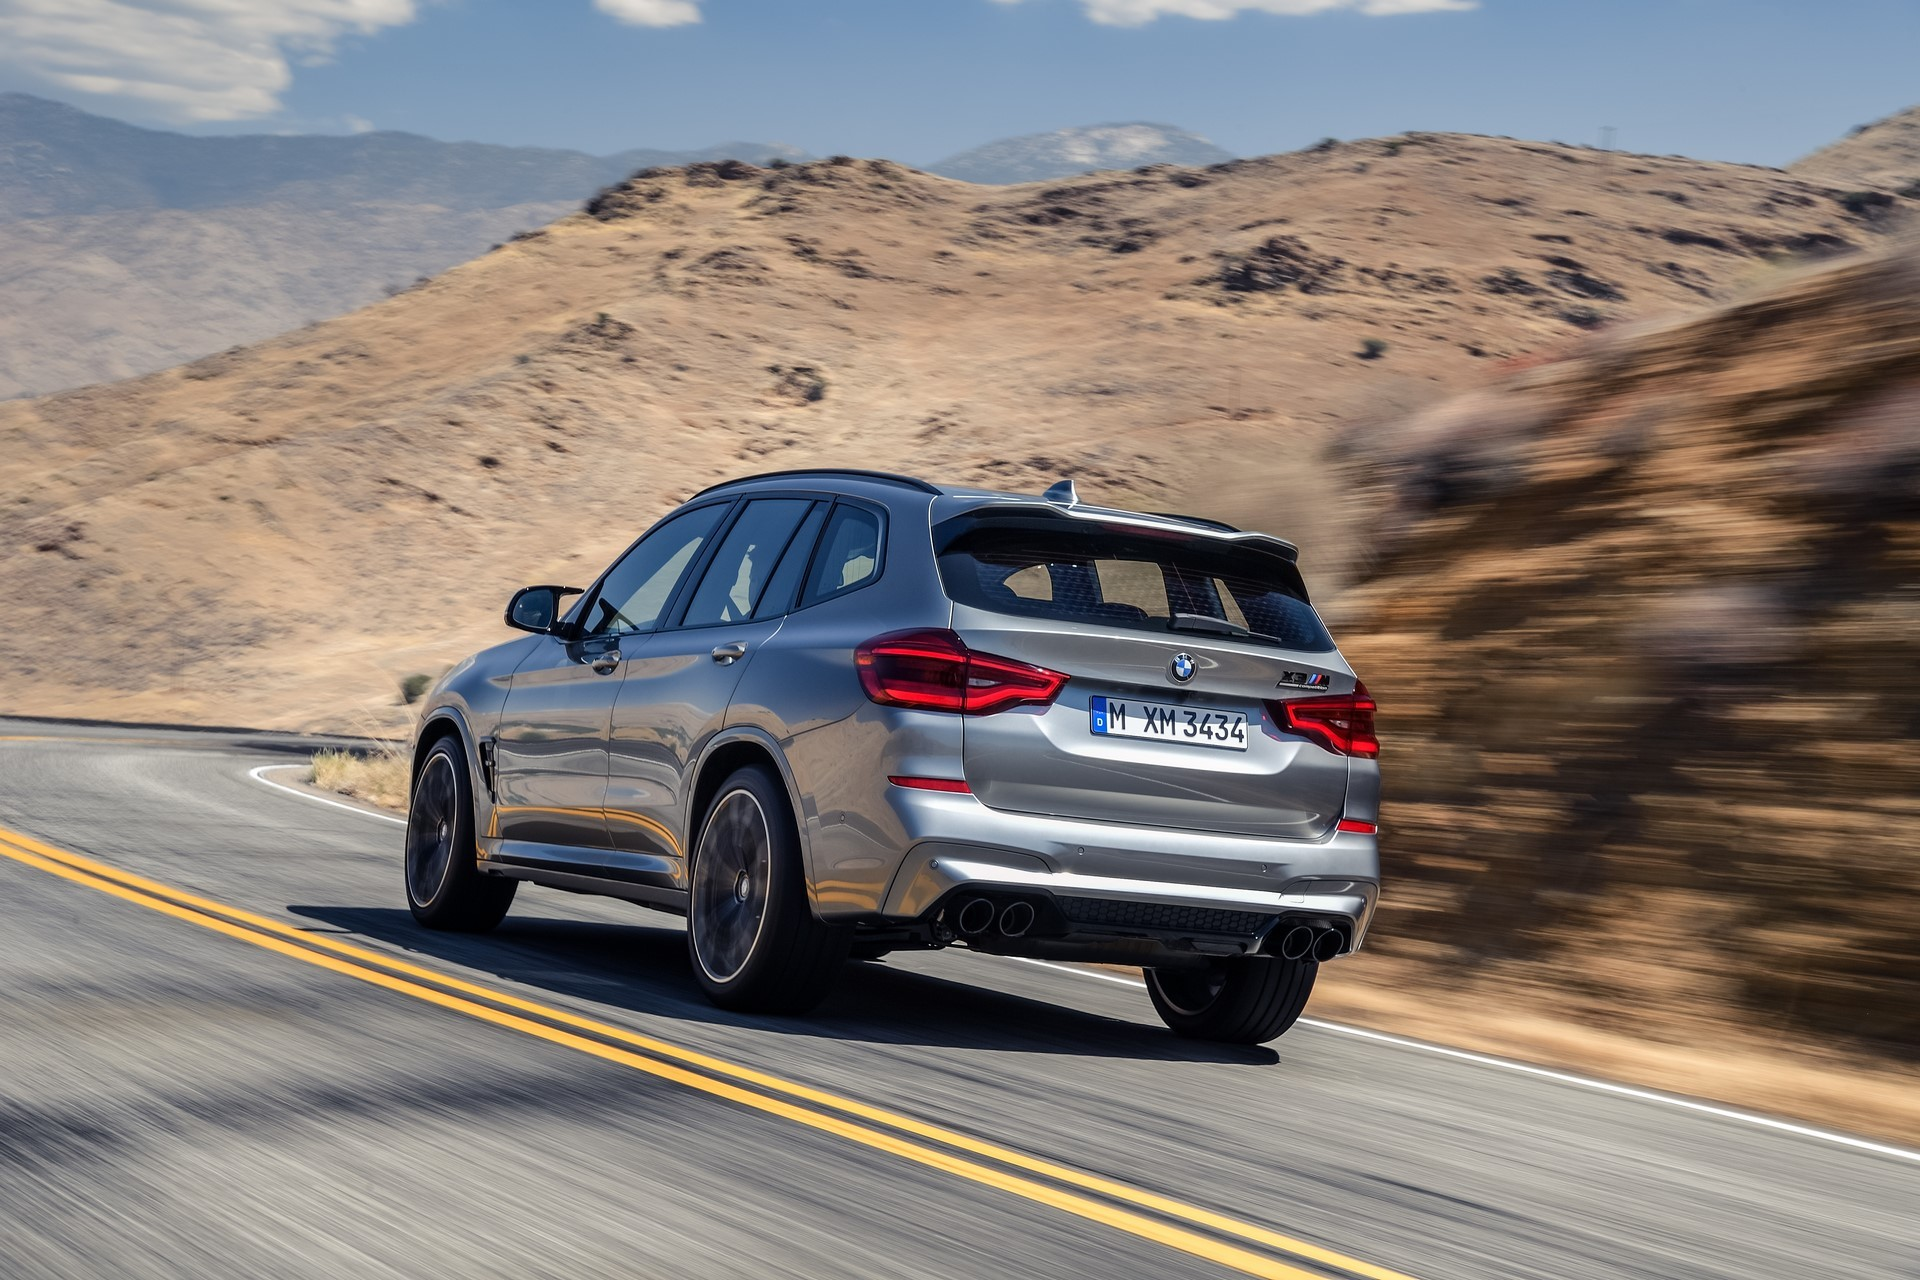 BMW X3 M and X4 M 2019 (29)